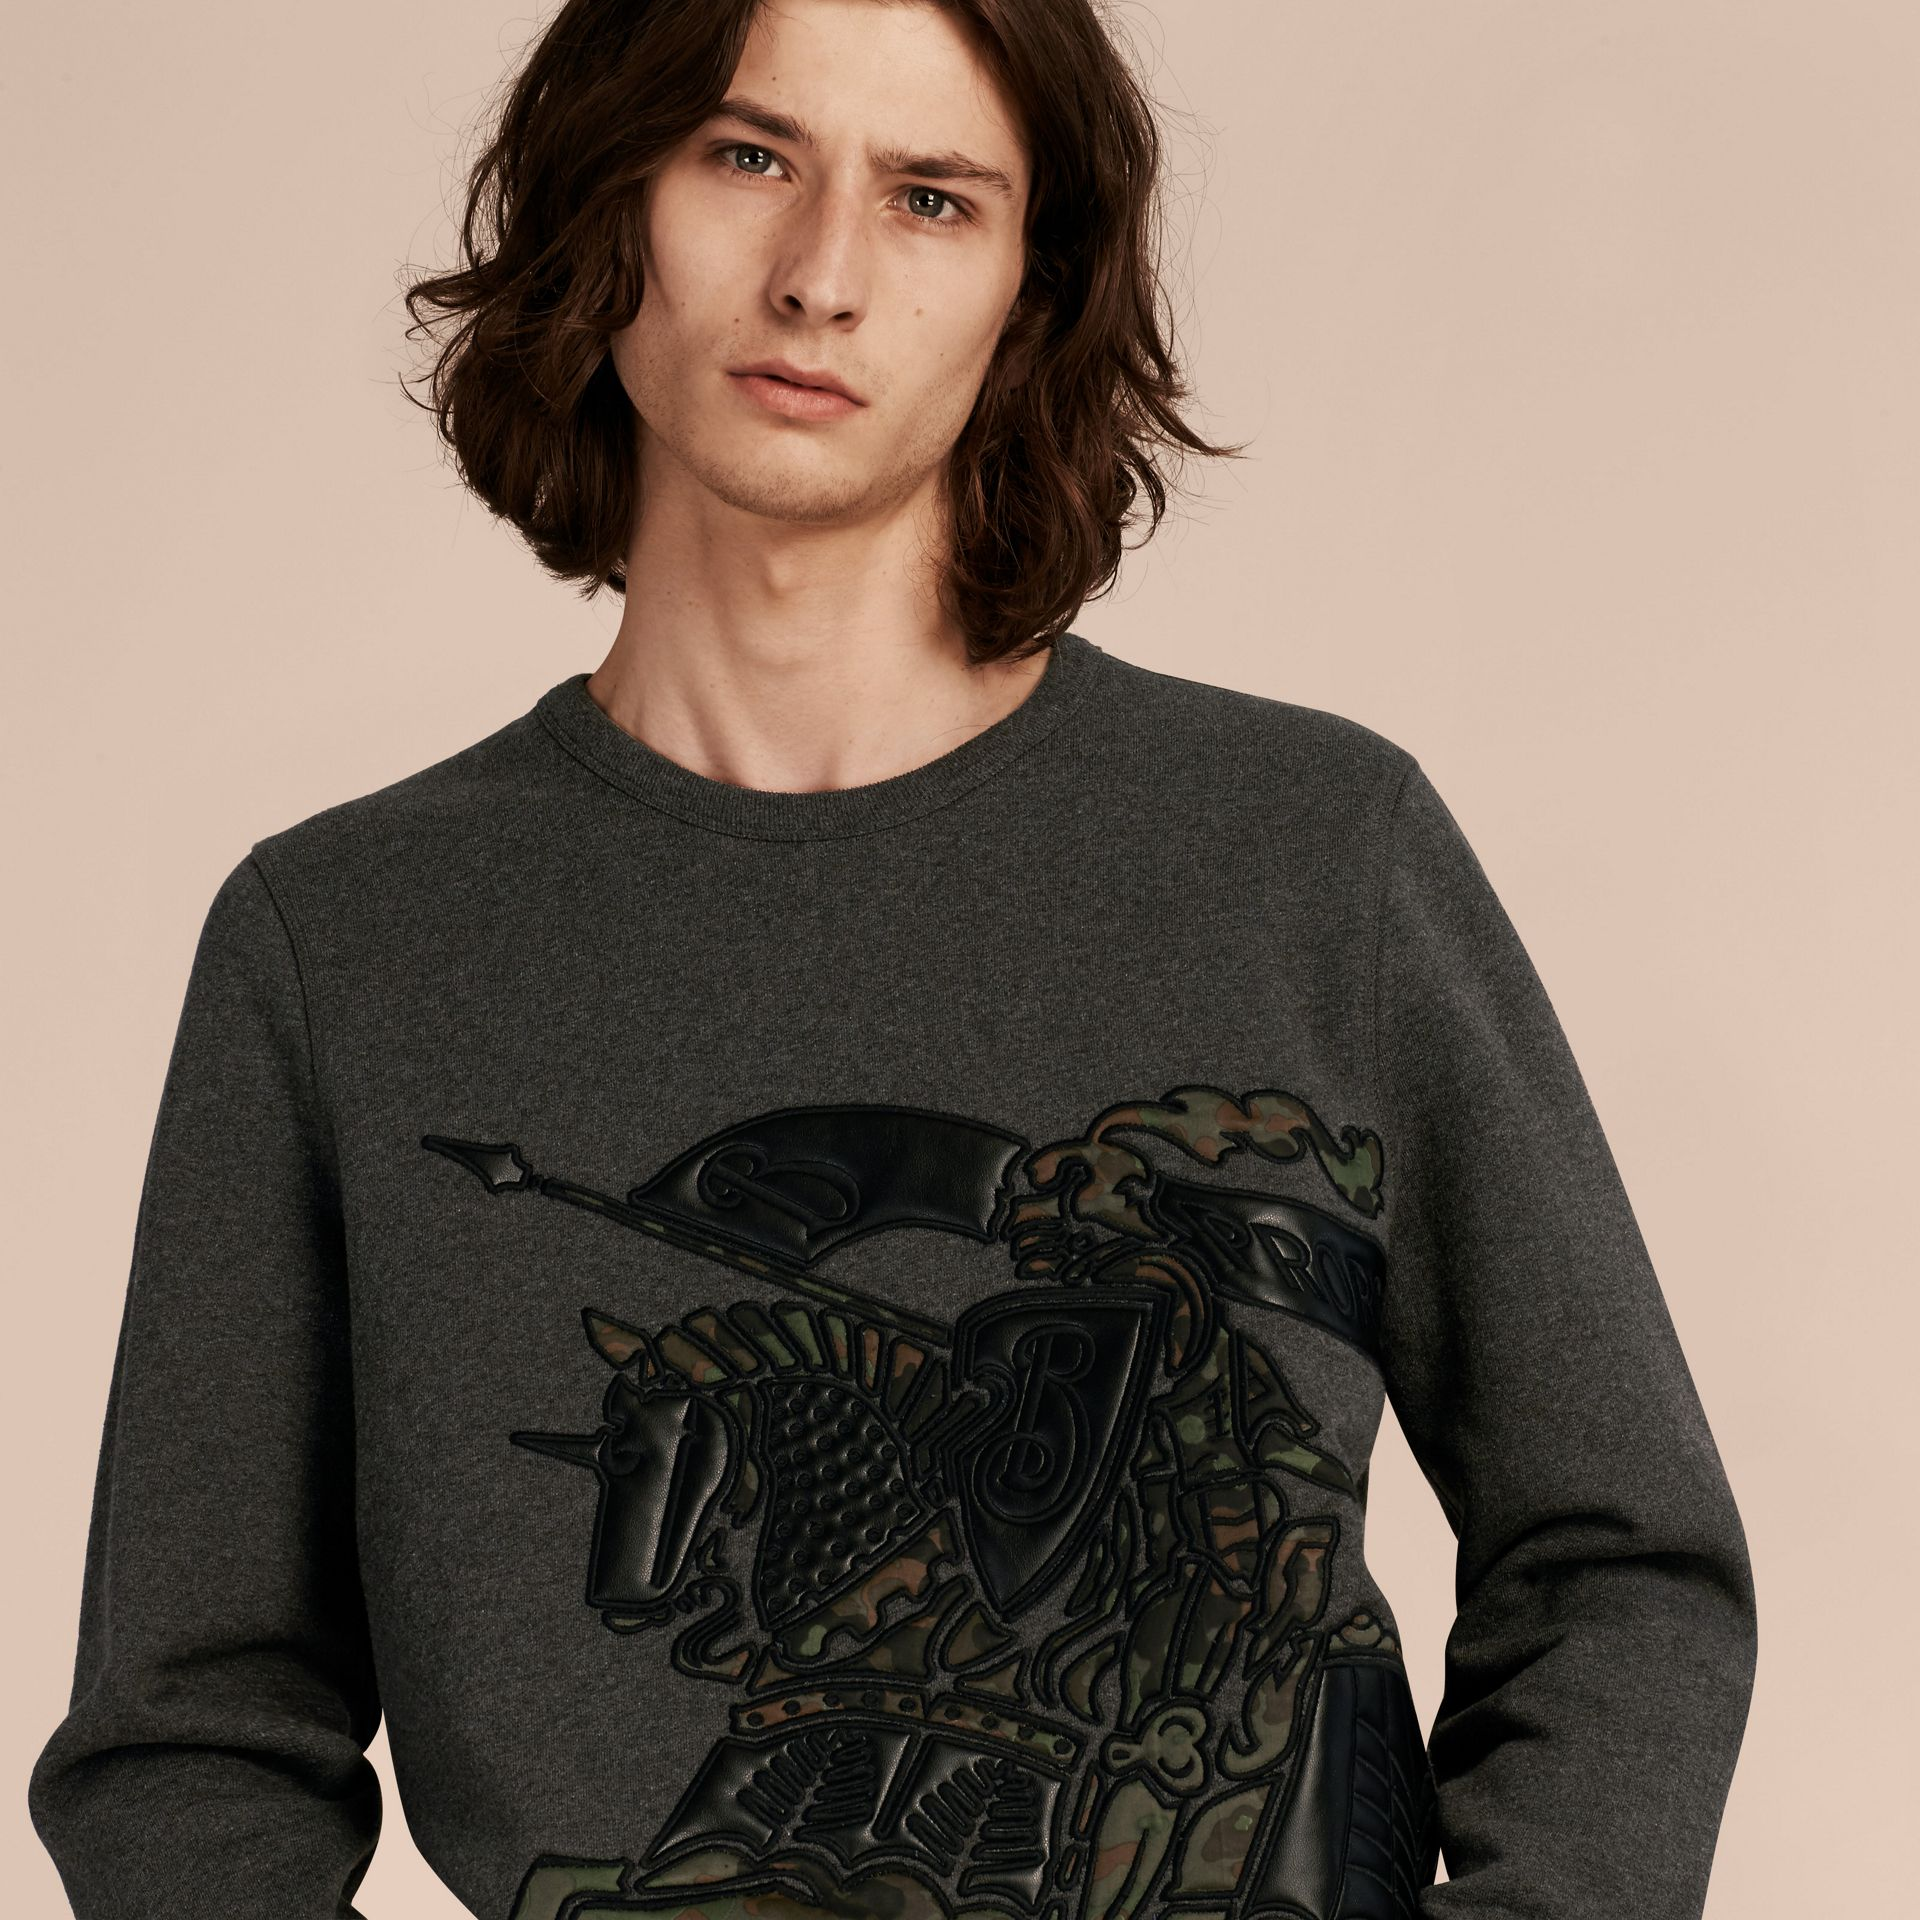 Charcoal melange Equestrian Knight Motif Cotton and Lambskin Sweatshirt - gallery image 5